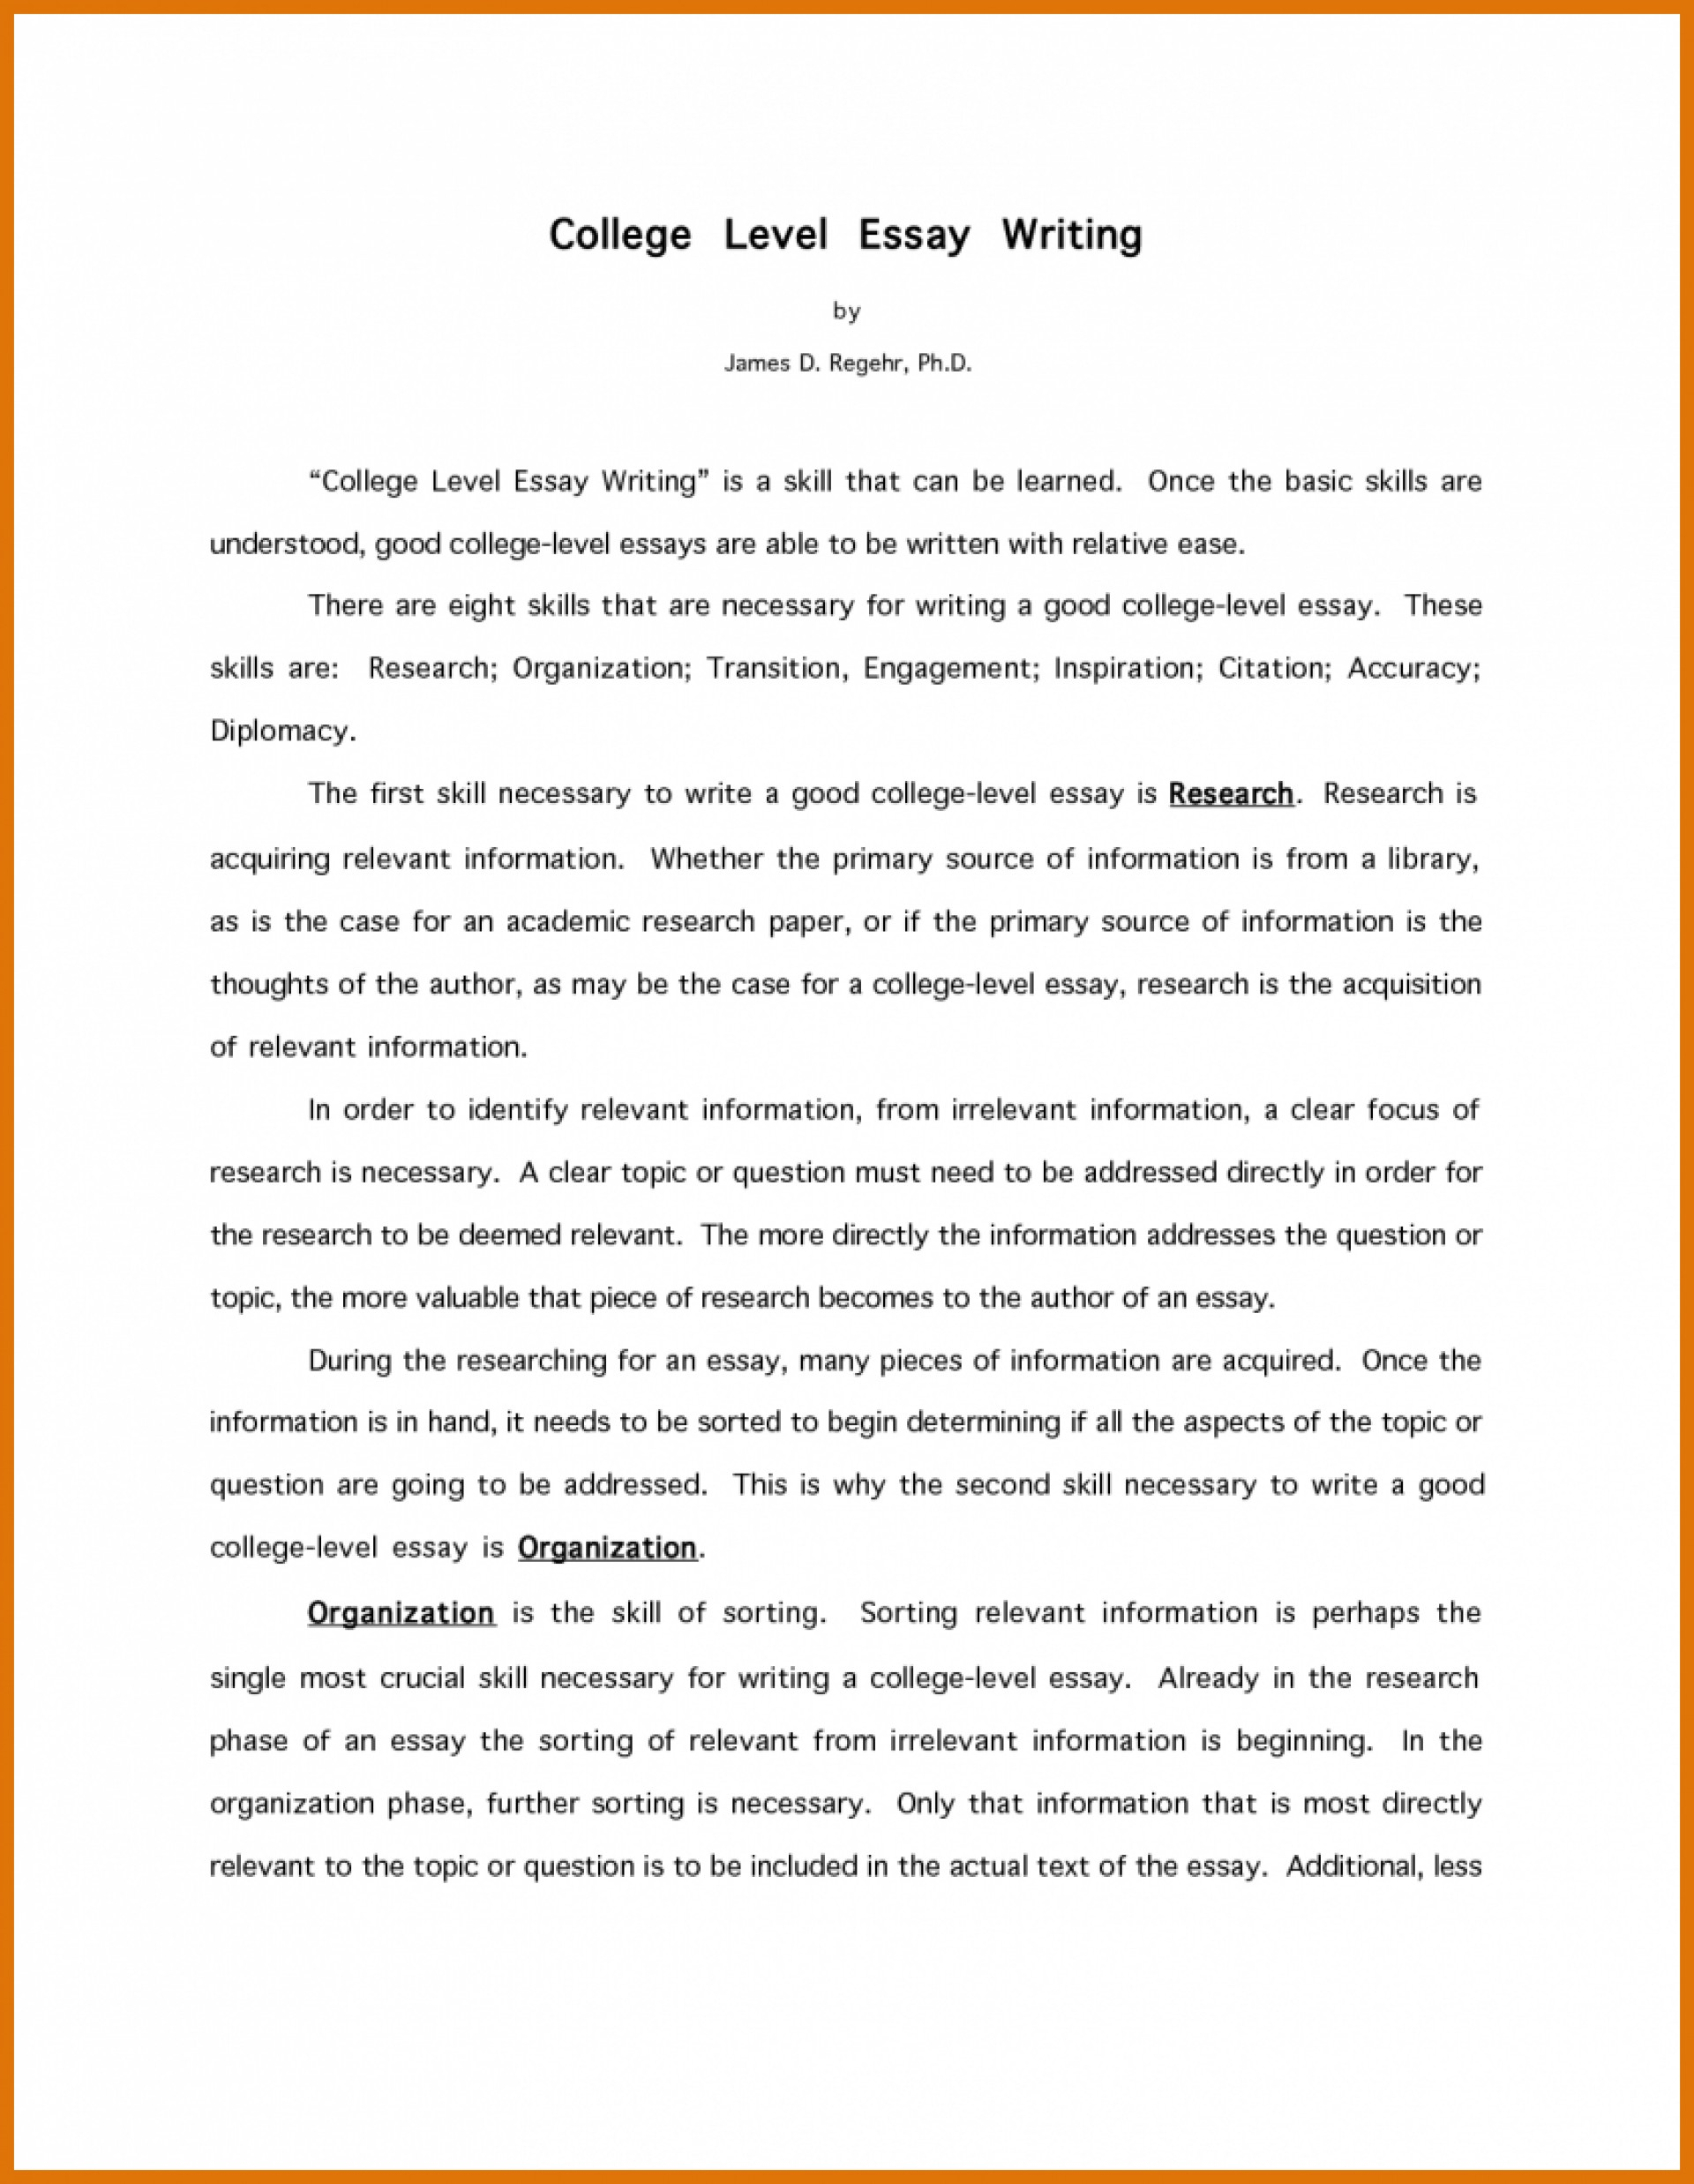 019 Example Of College Persuasive Essay Isipingo Secondary Best Way To Write Lev Level How Introduction Tips For Writing Outline Steps Do Exceptional Examples Argumentative Topics 1920